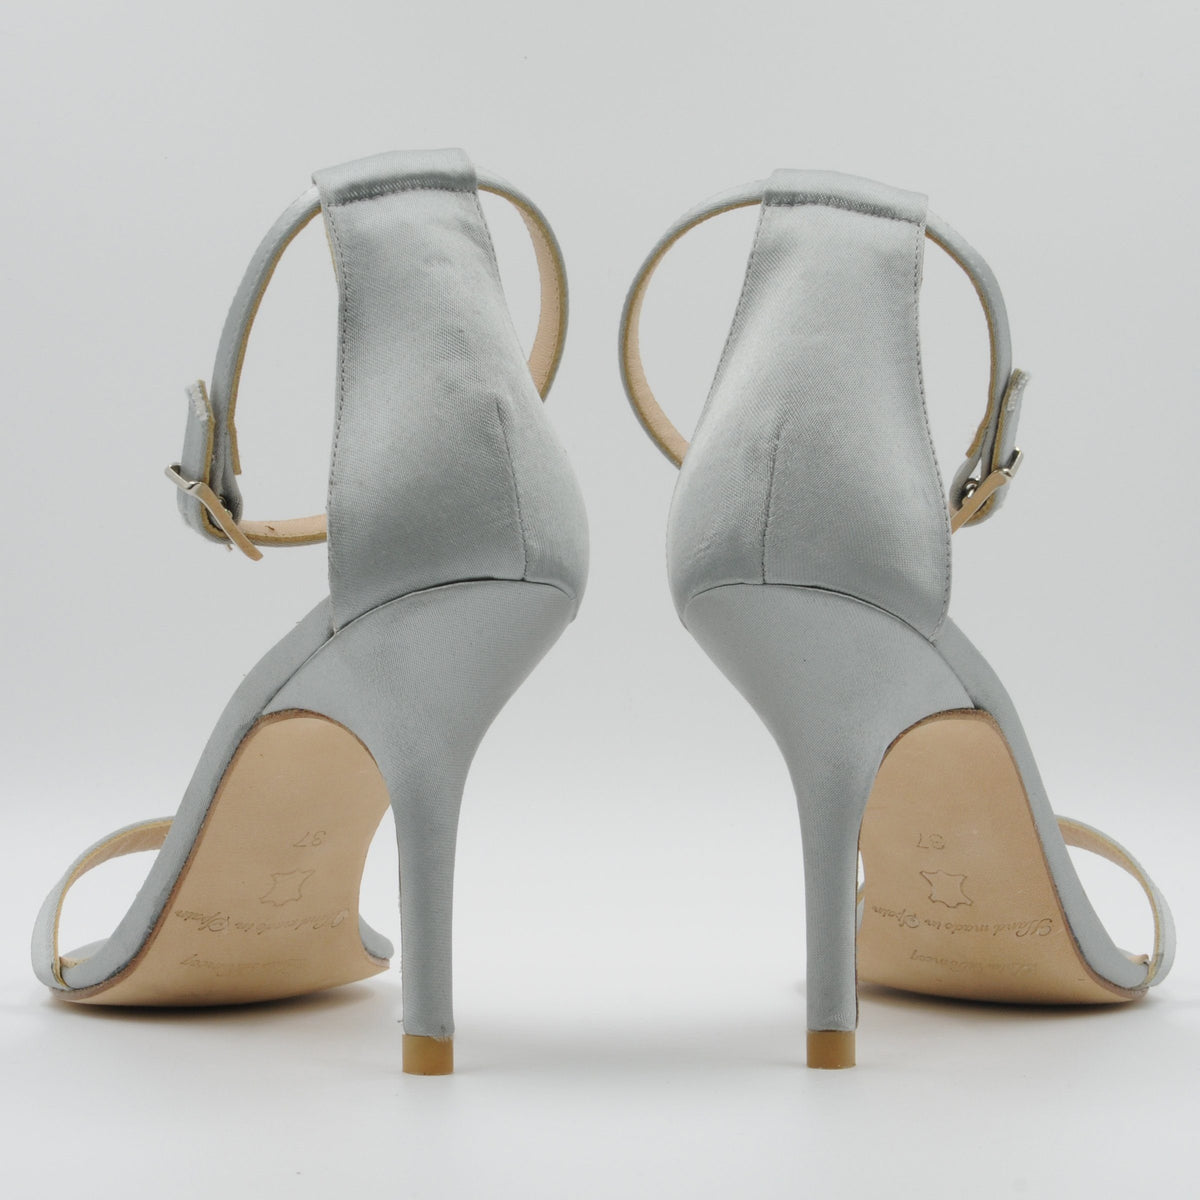 Lola Domecq Alejandra In Silver Handcrafted satin stilettos bridal